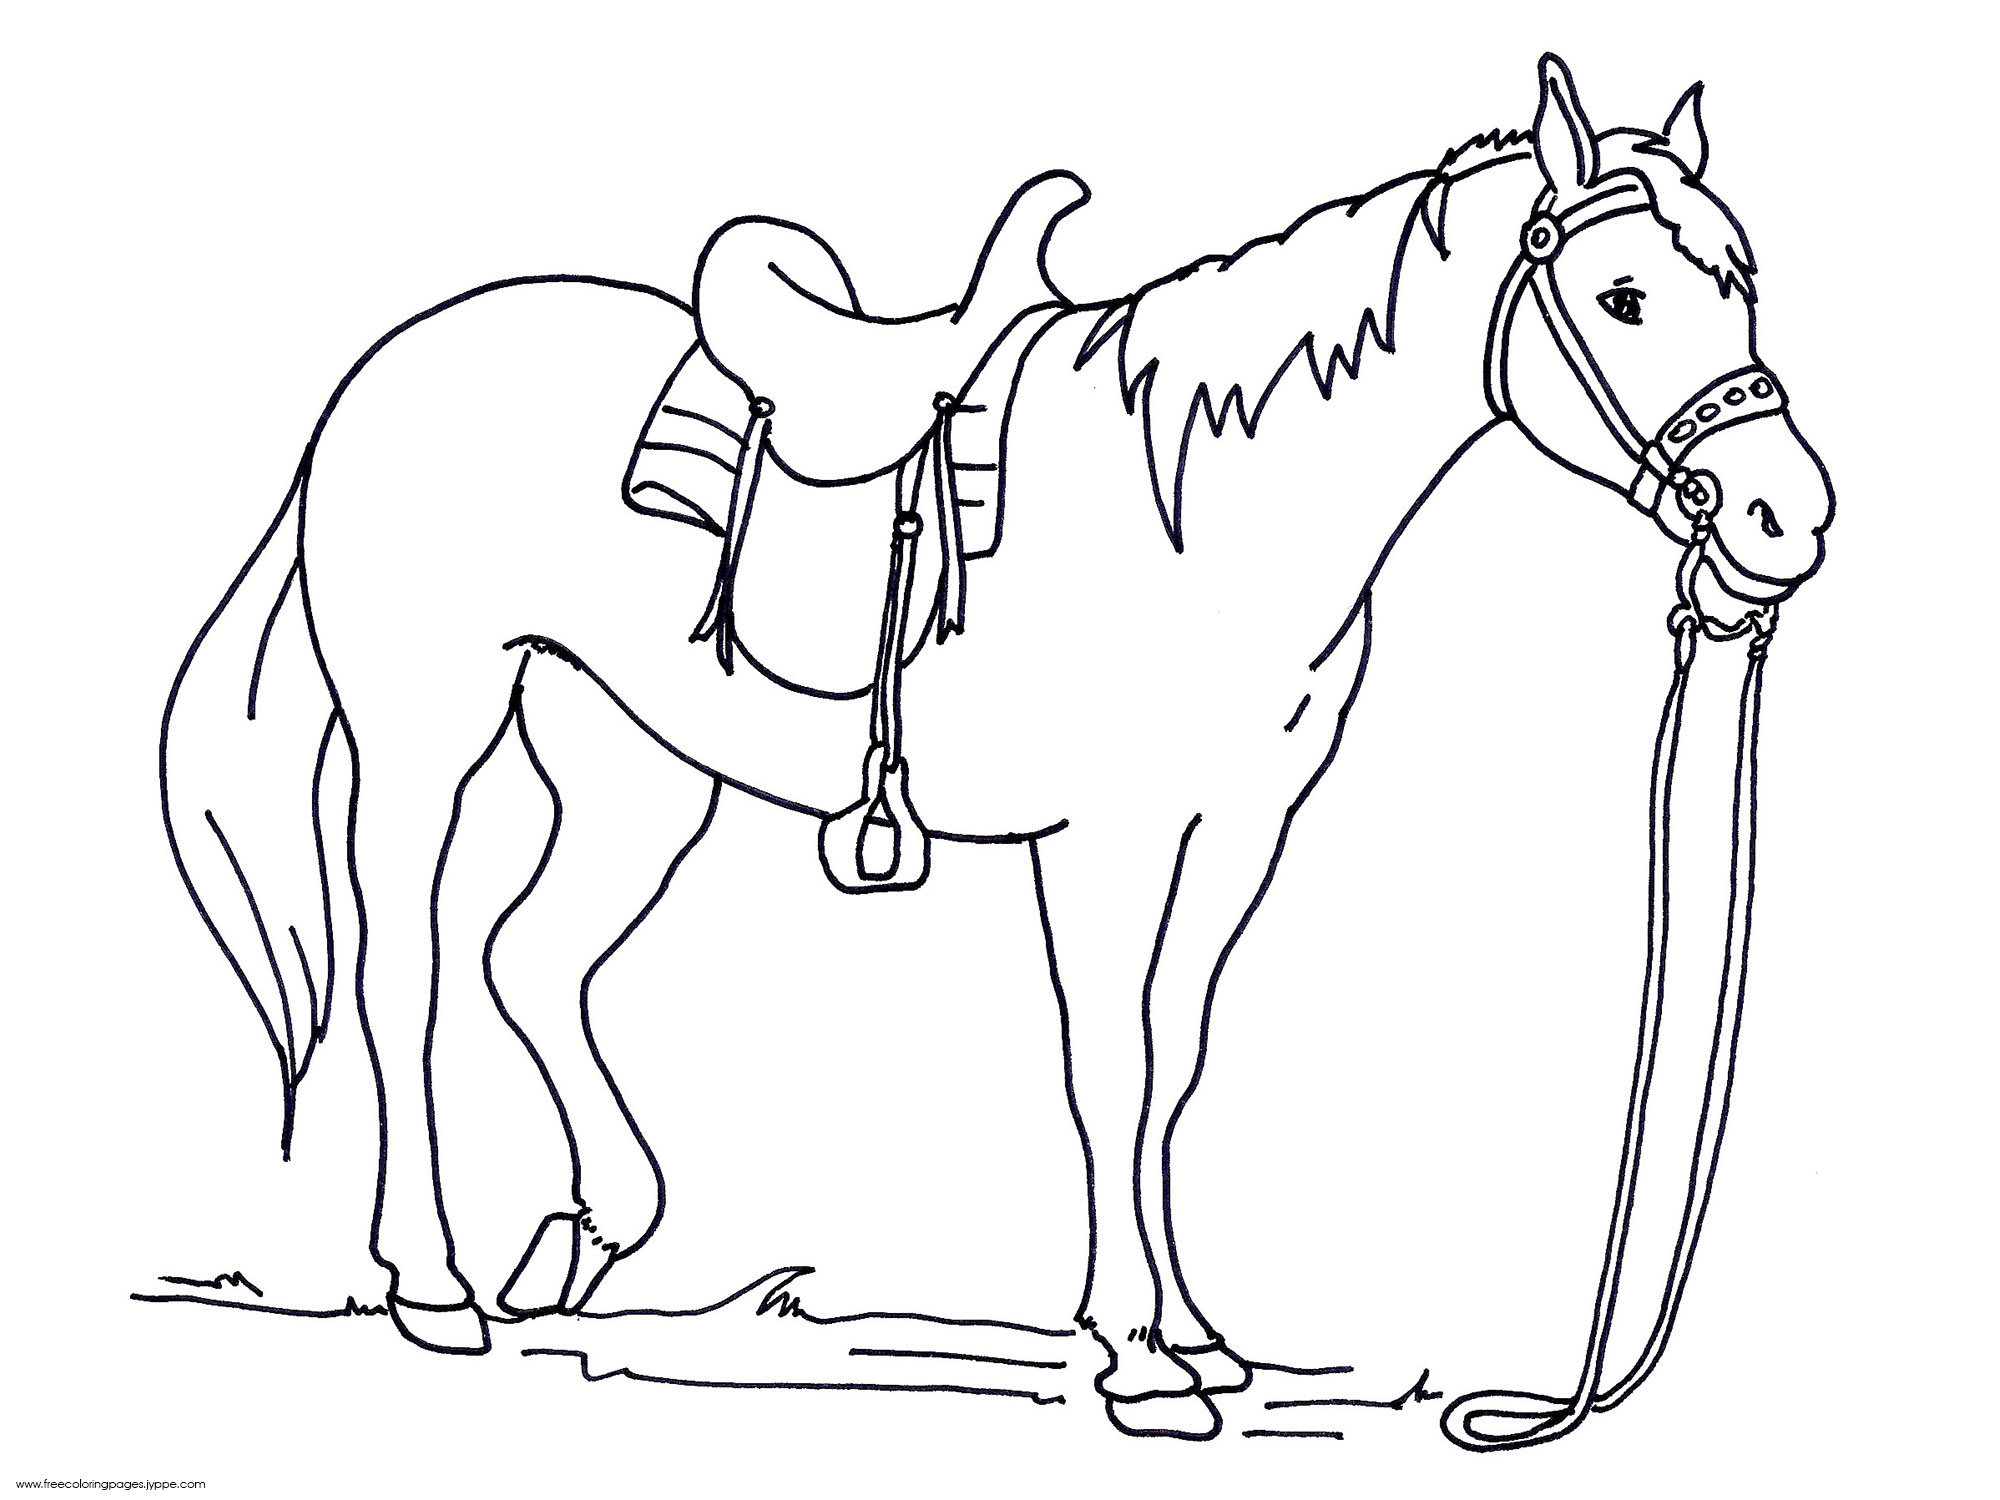 Realistic Horse Coloring Pages To Download And Print For Free Coloring Pages Of Horses